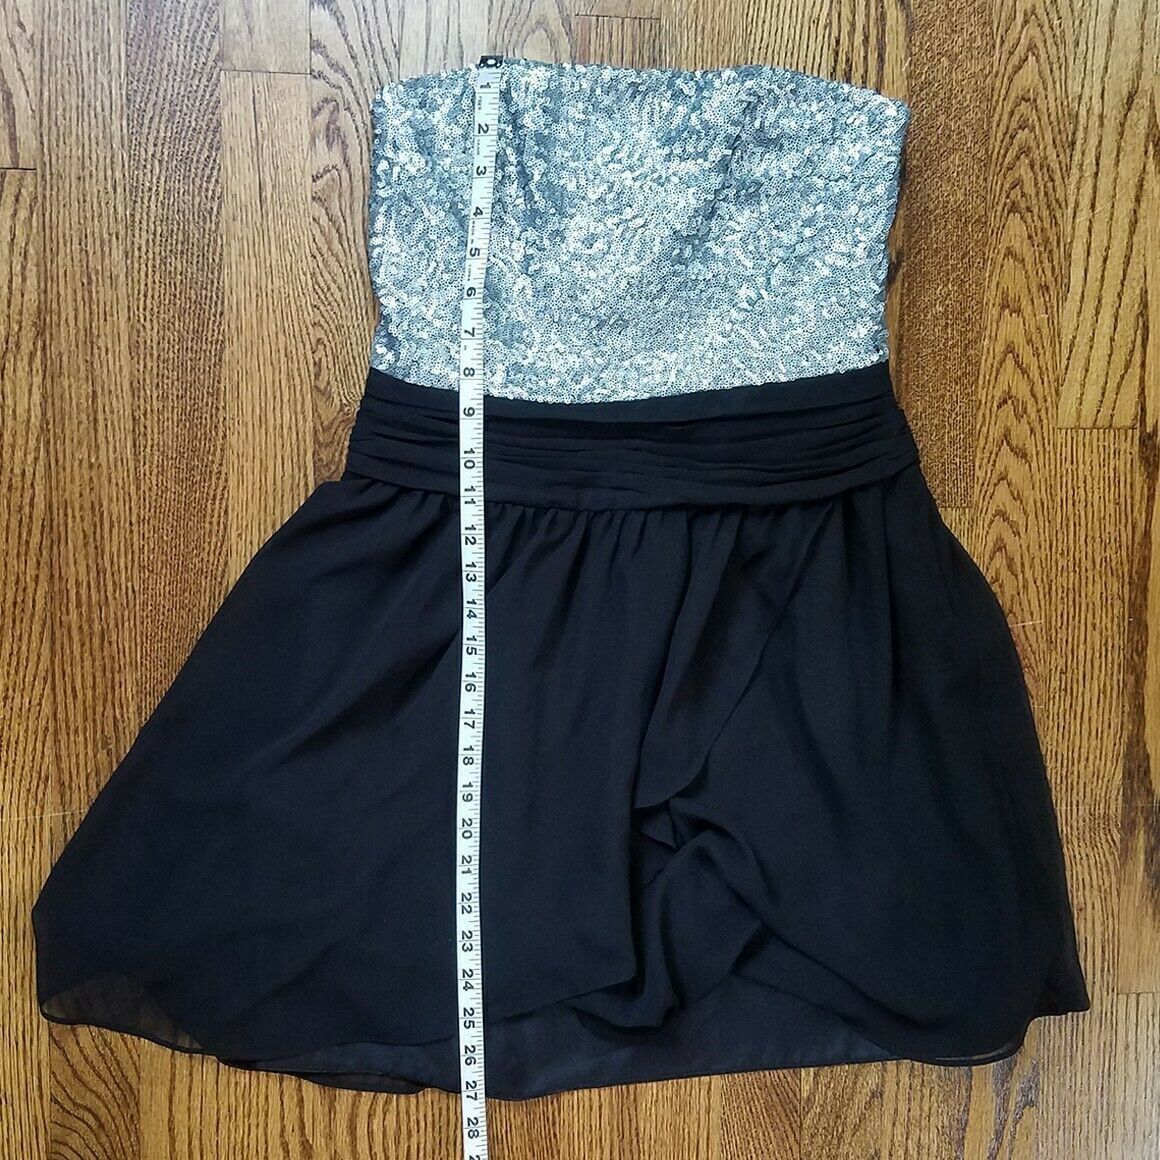 Express Silver & Black Sequin Strapless Cocktail Dress Size 6 image 7